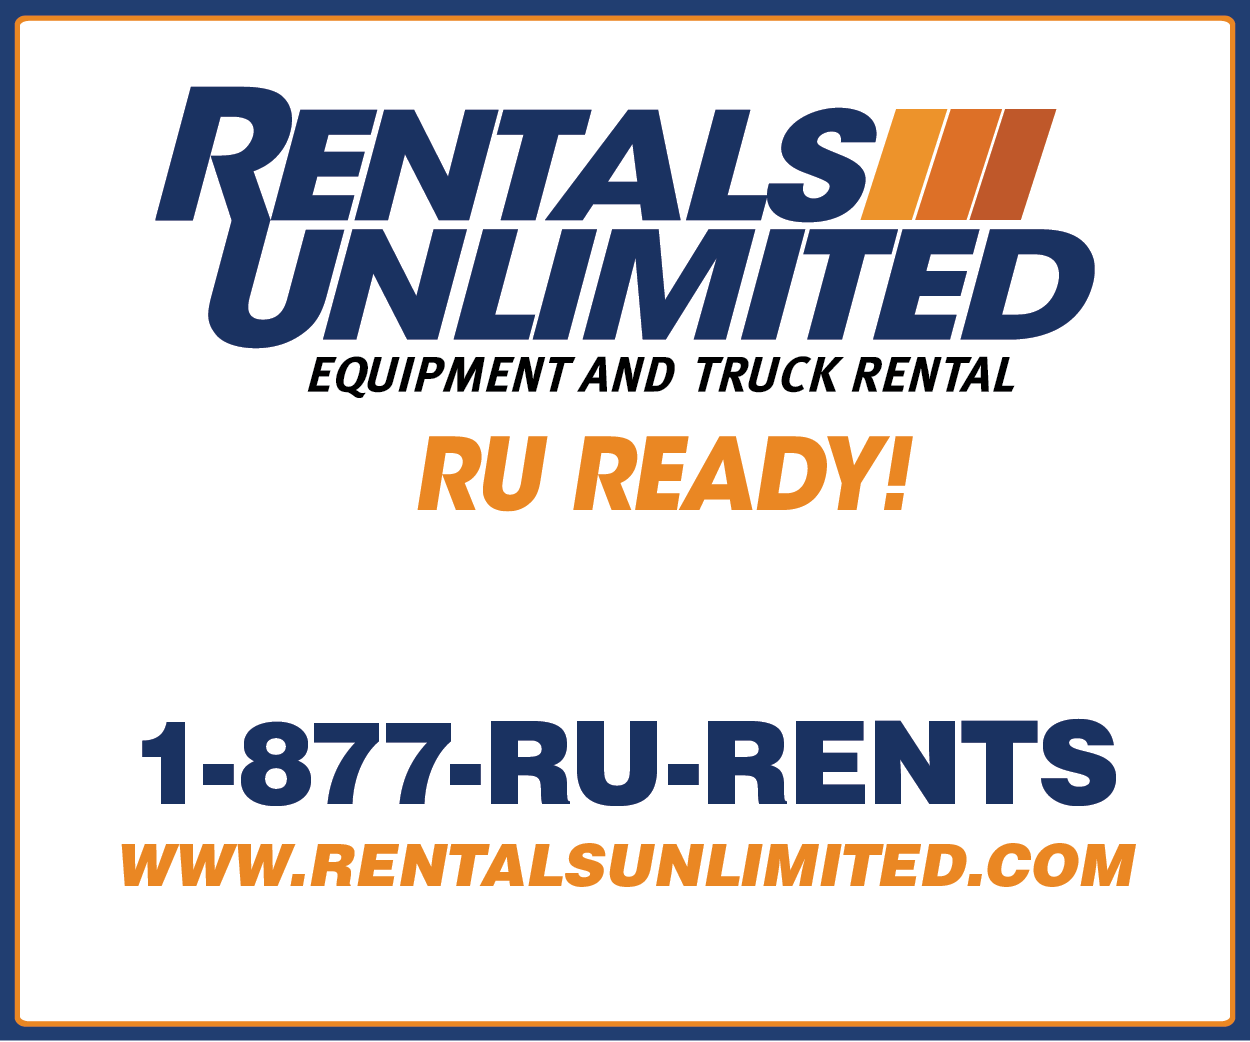 Rentals Unlimited, Inc.